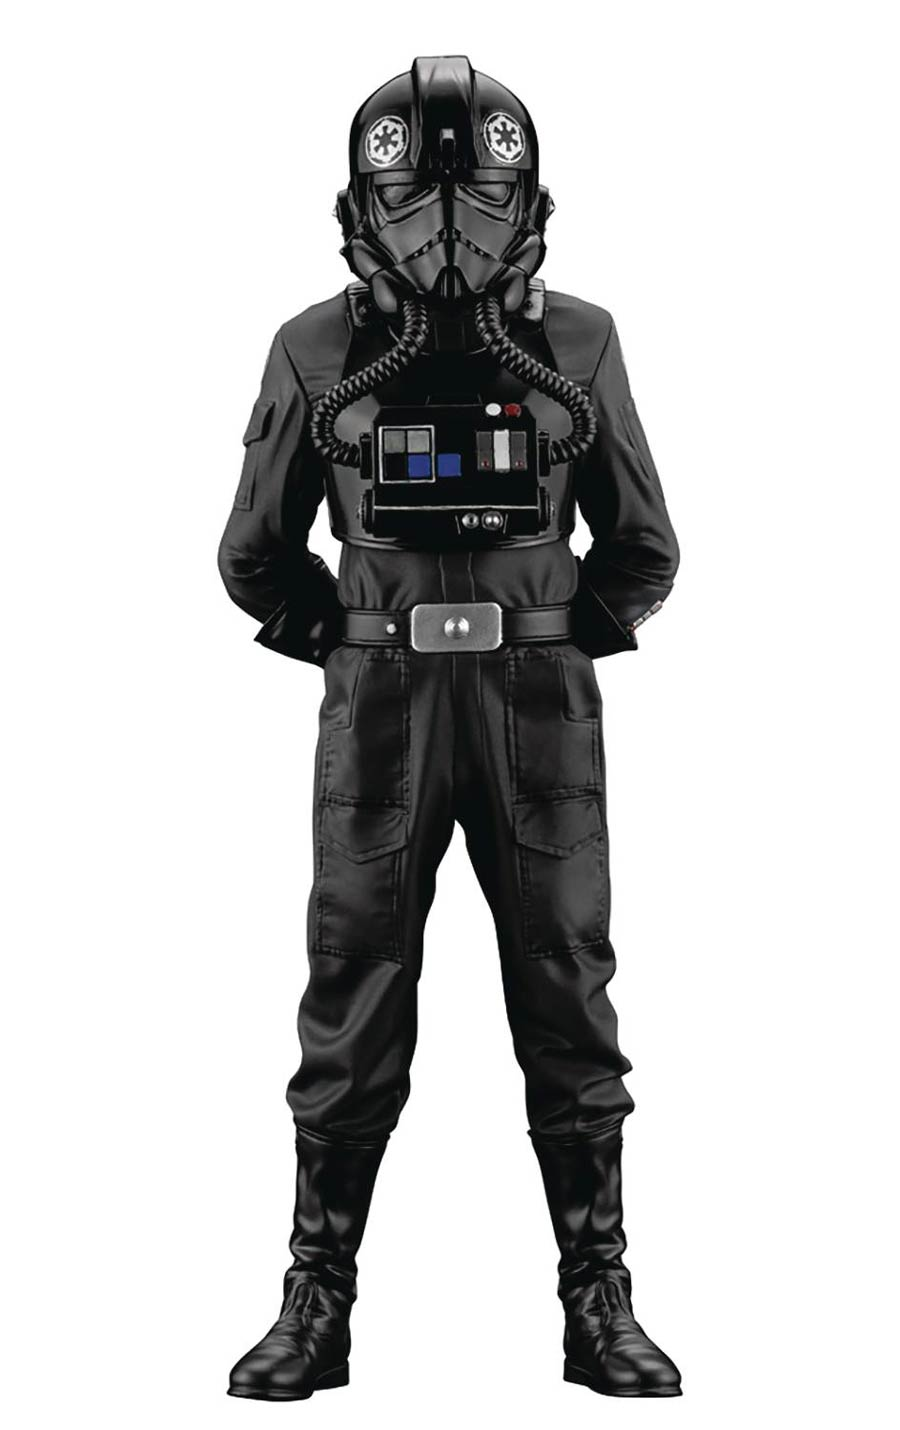 Star Wars A New Hope TIE Fighter Pilot ARTFX Plus Statue